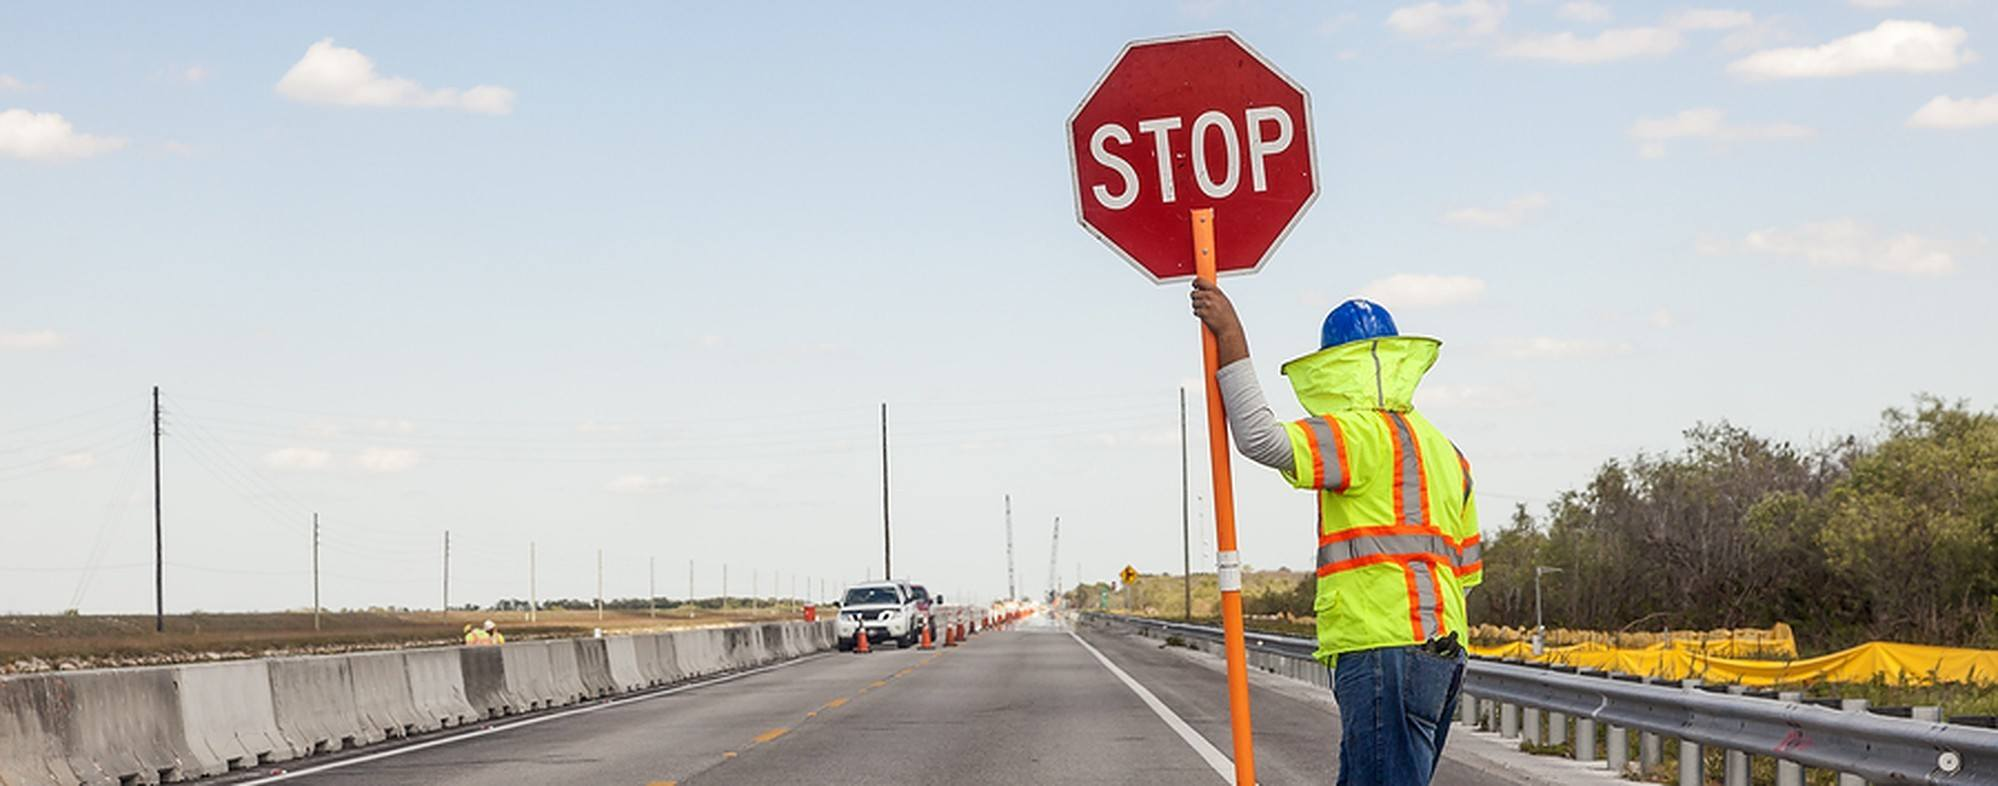 how to pass your C-31 contractor license exam in california for traffic control contractors in california applying to the CSLB license exam